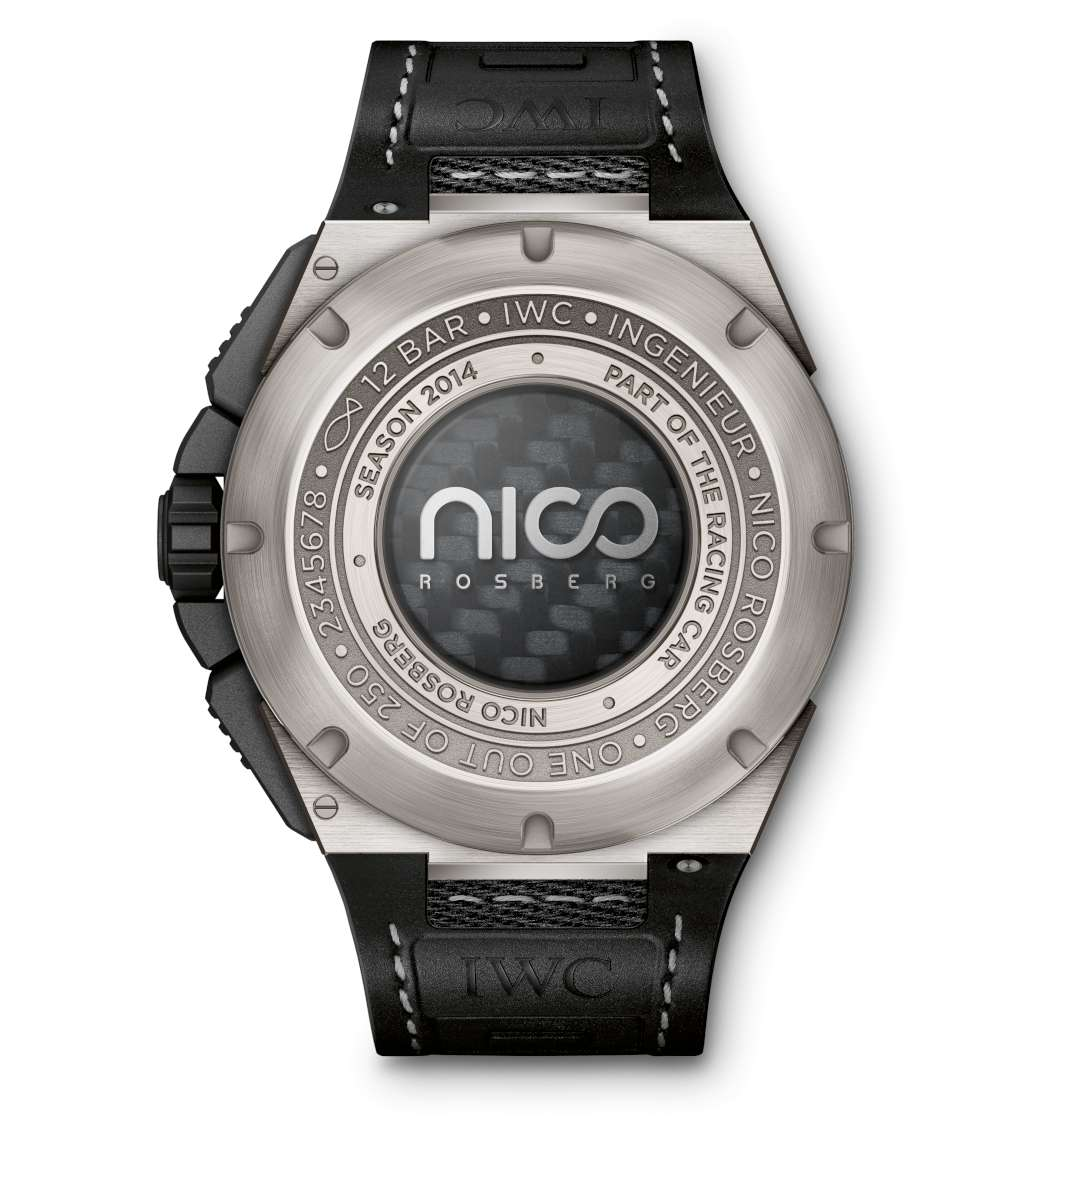 Nico Rosberg's Ingenieur watch, reverse, with medallion of carbon from a racing car, under a sapphire caseback with the driver's logo